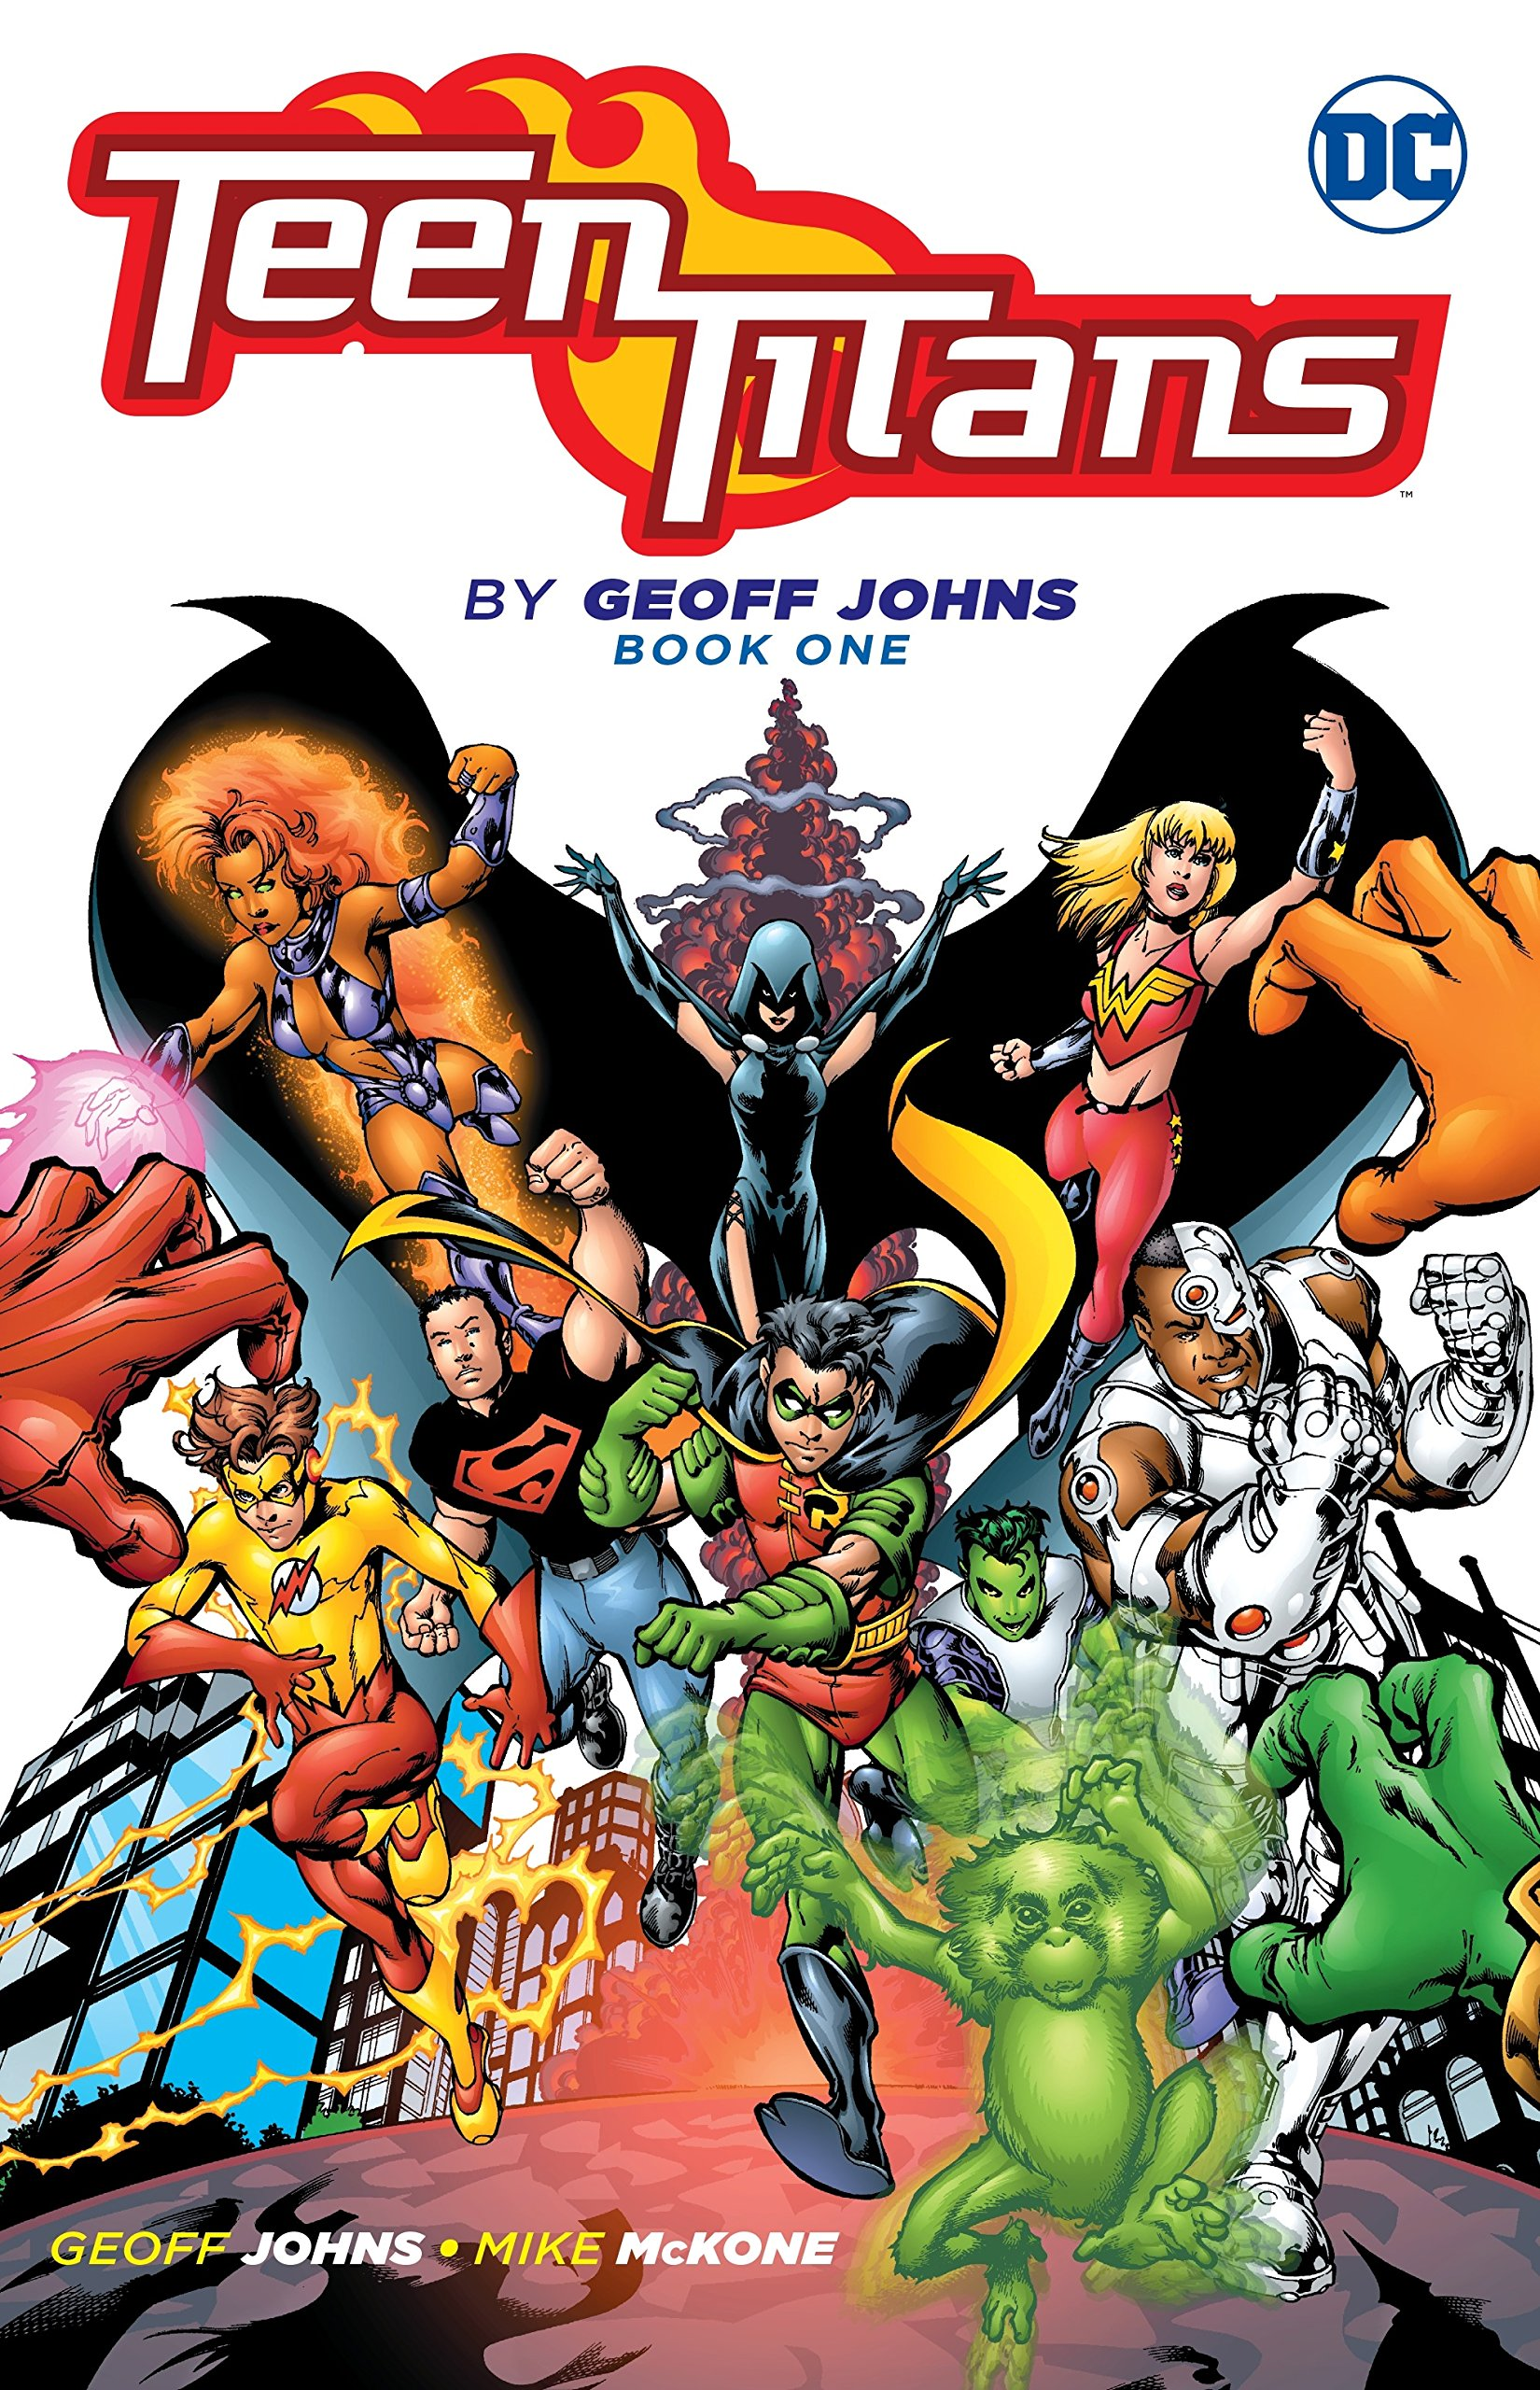 Amazon.com: Teen Titans by Geoff Johns Book One (9781401265984): Johns,  Geoff: Books